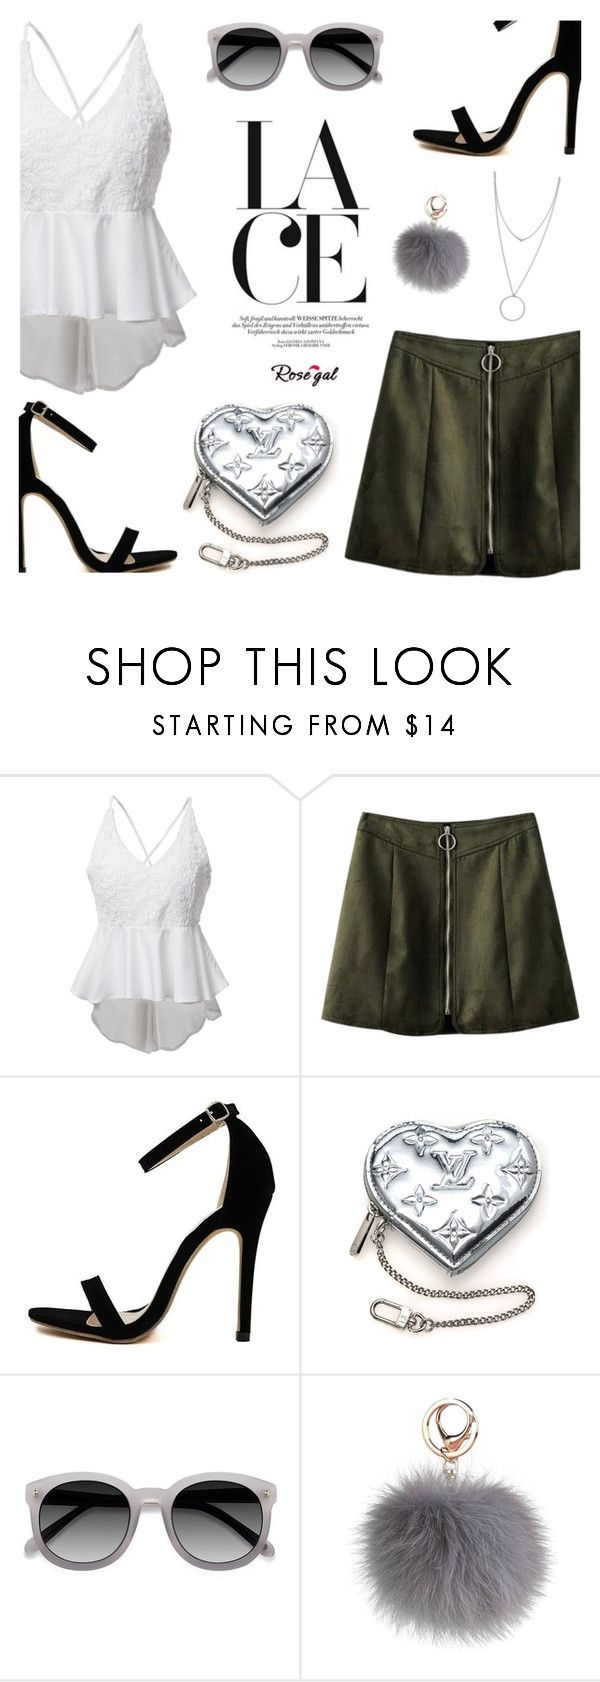 """14 Lace top Rosegal"" by wannanna ❤ liked on Polyvore featuring Louis Vuitton, Ace and Botkier"